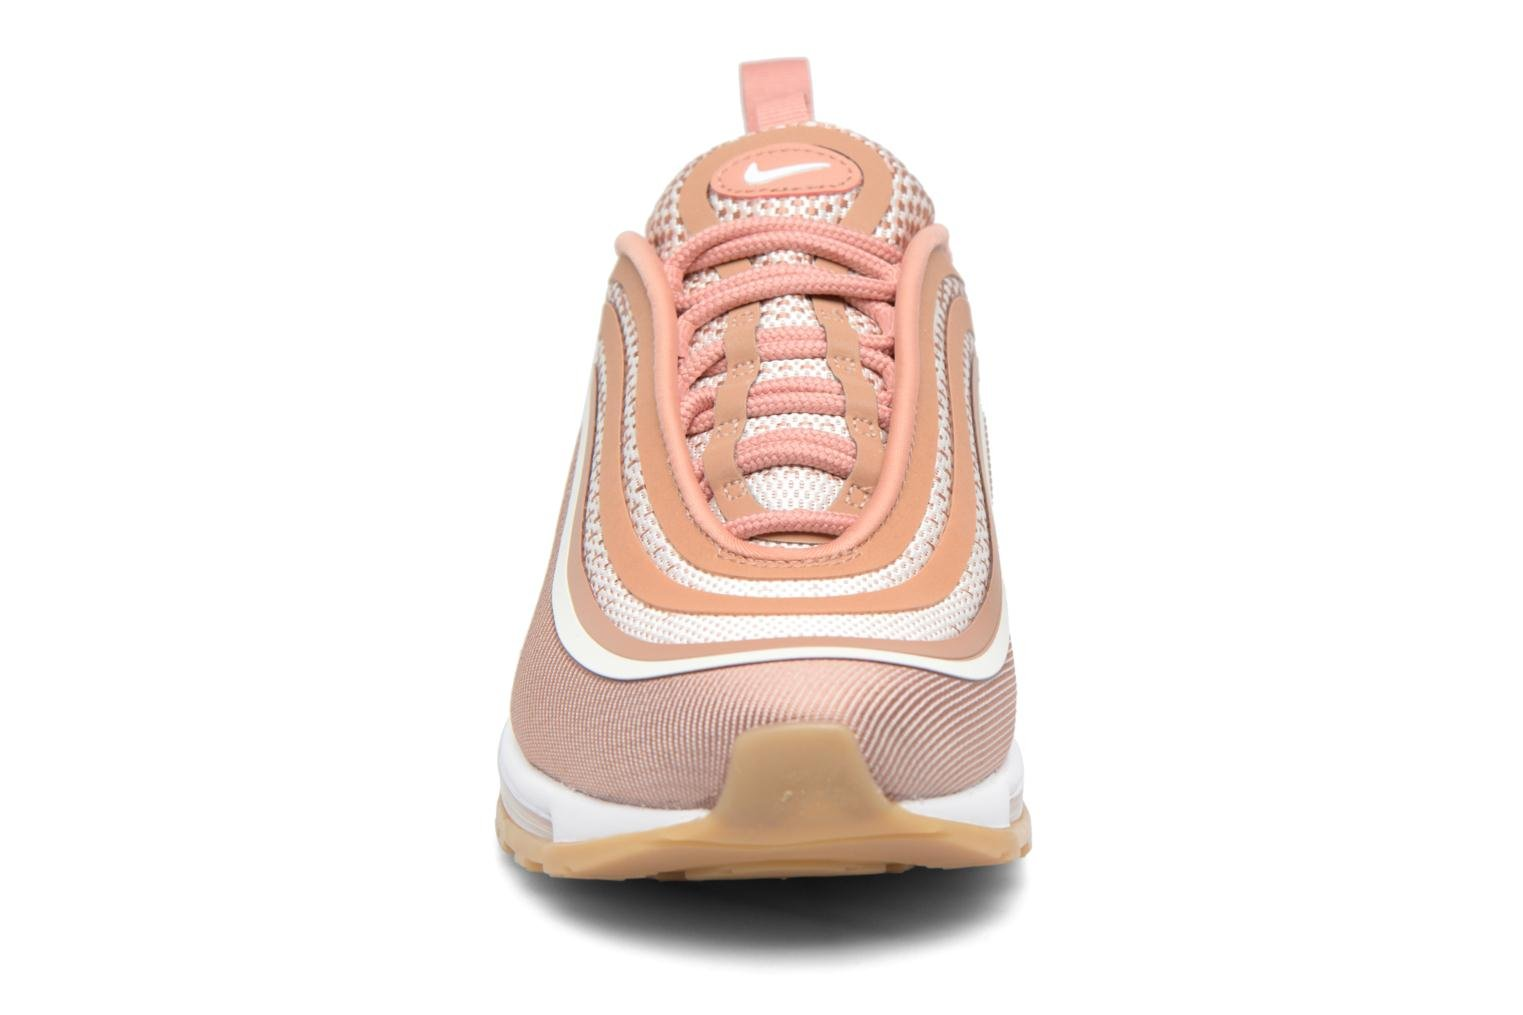 W Air Max 97 Ul '17 Mtlc Rose Gold/Gum Light Brown